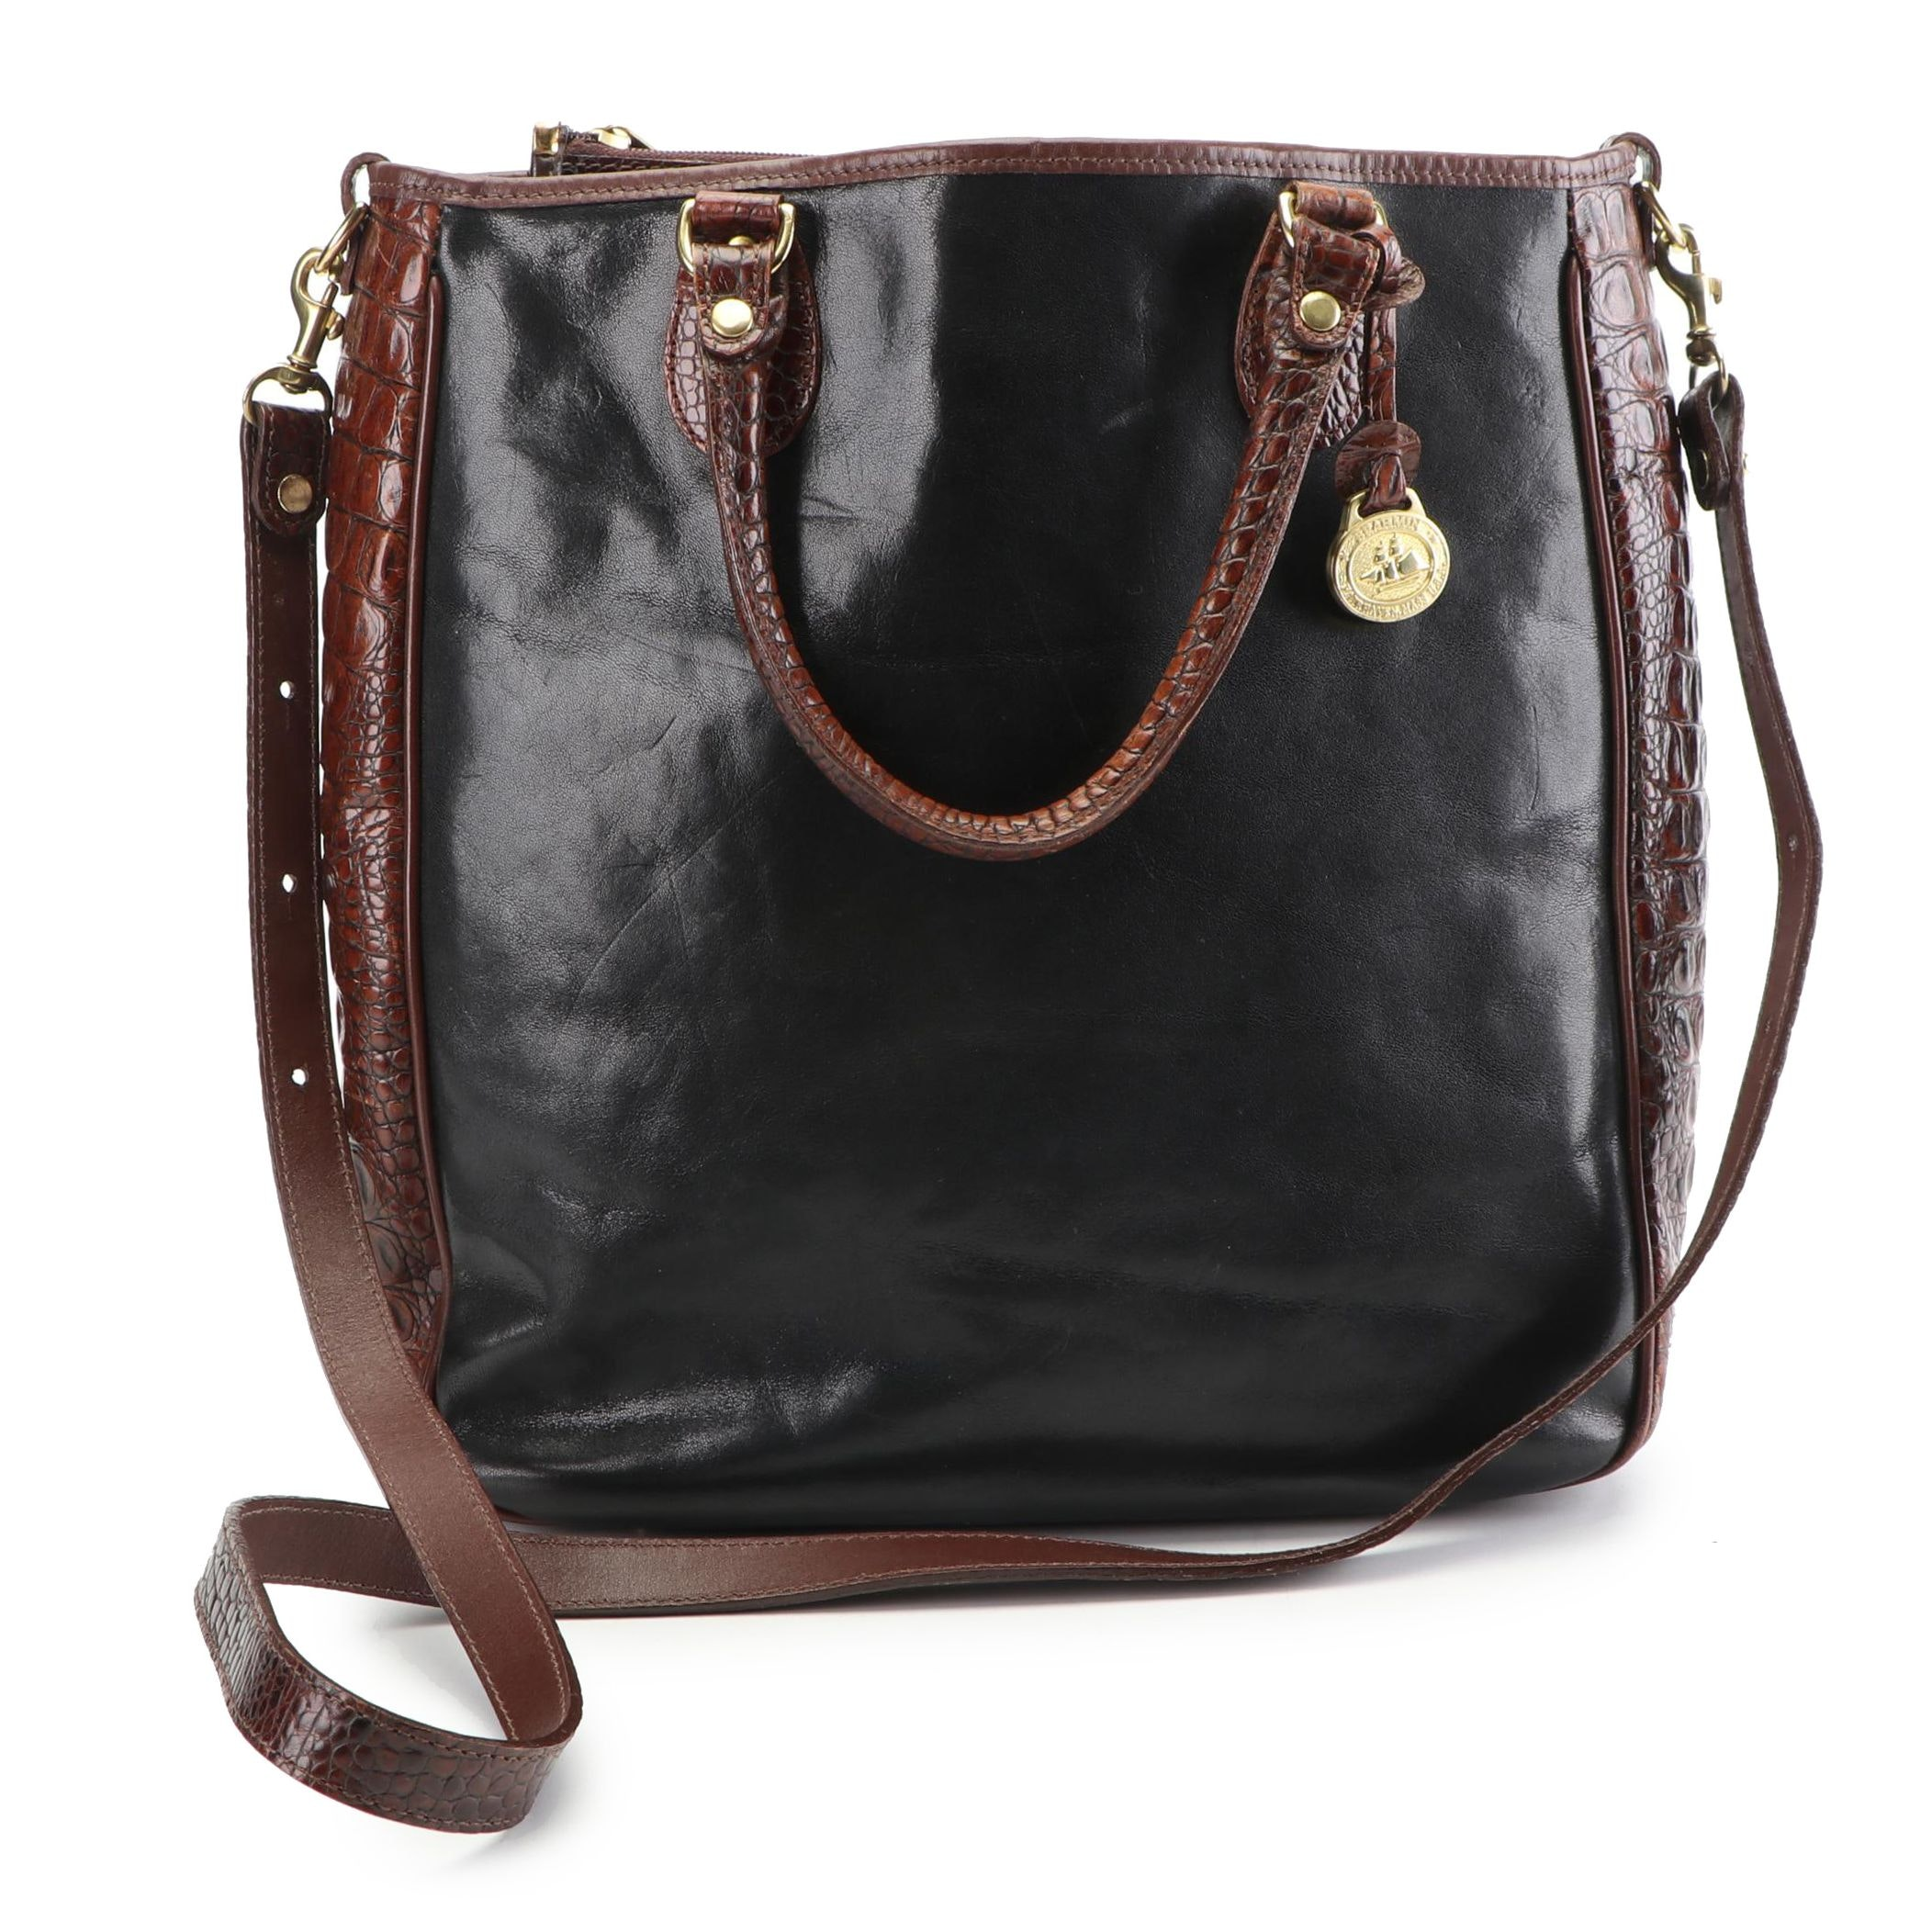 Brahmin Leather and Crocodile Embossed Leather Convertible Tote Bag